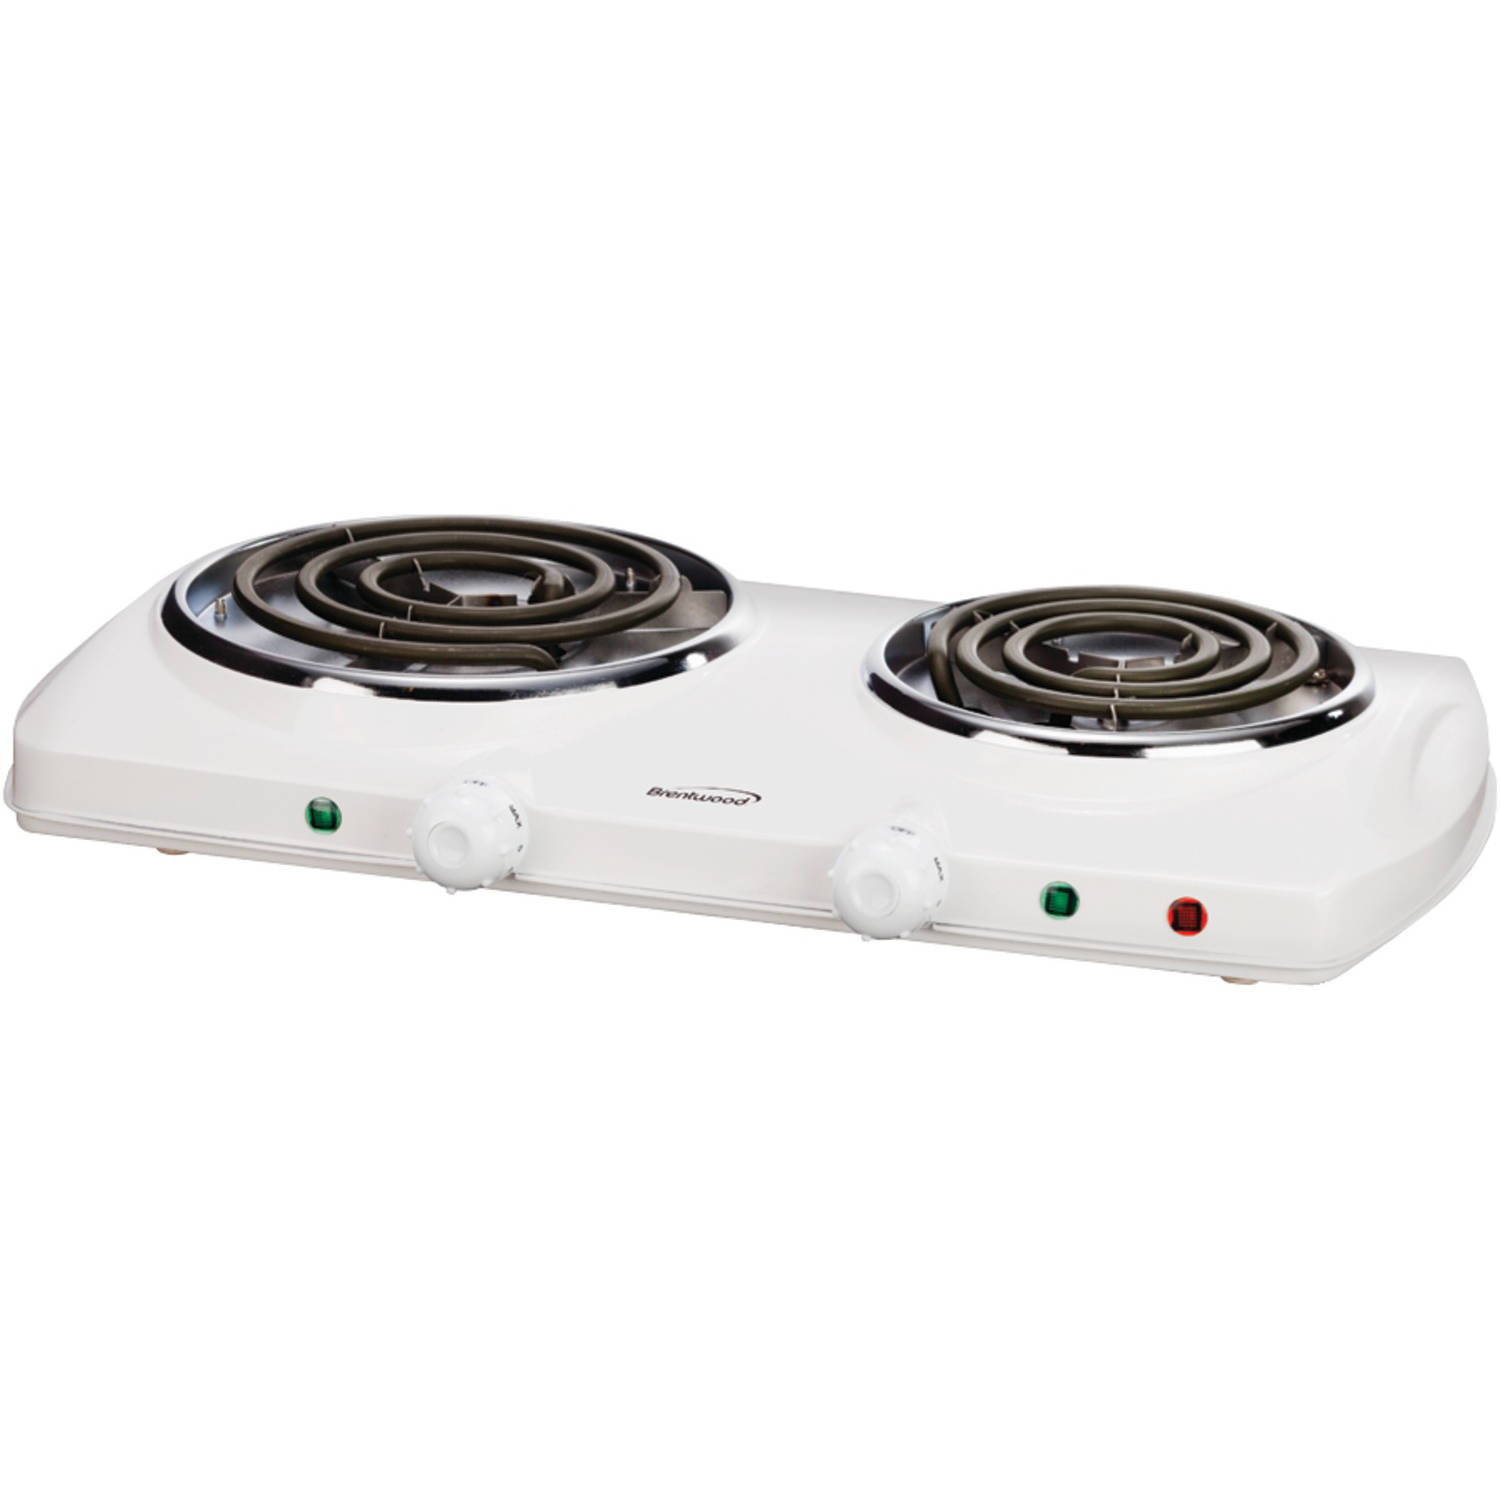 Brentwood Ts-368 Electric Double Burner, White